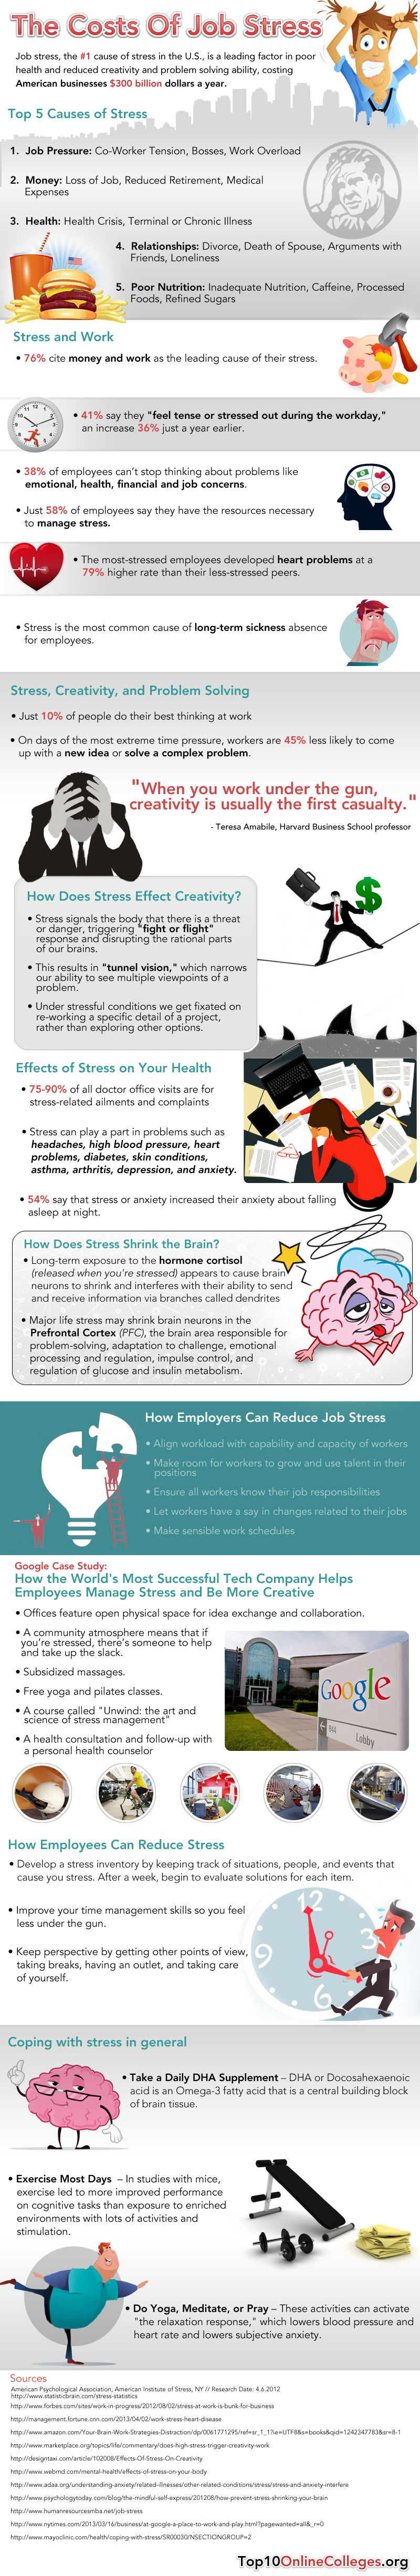 The Cost of Job Stress